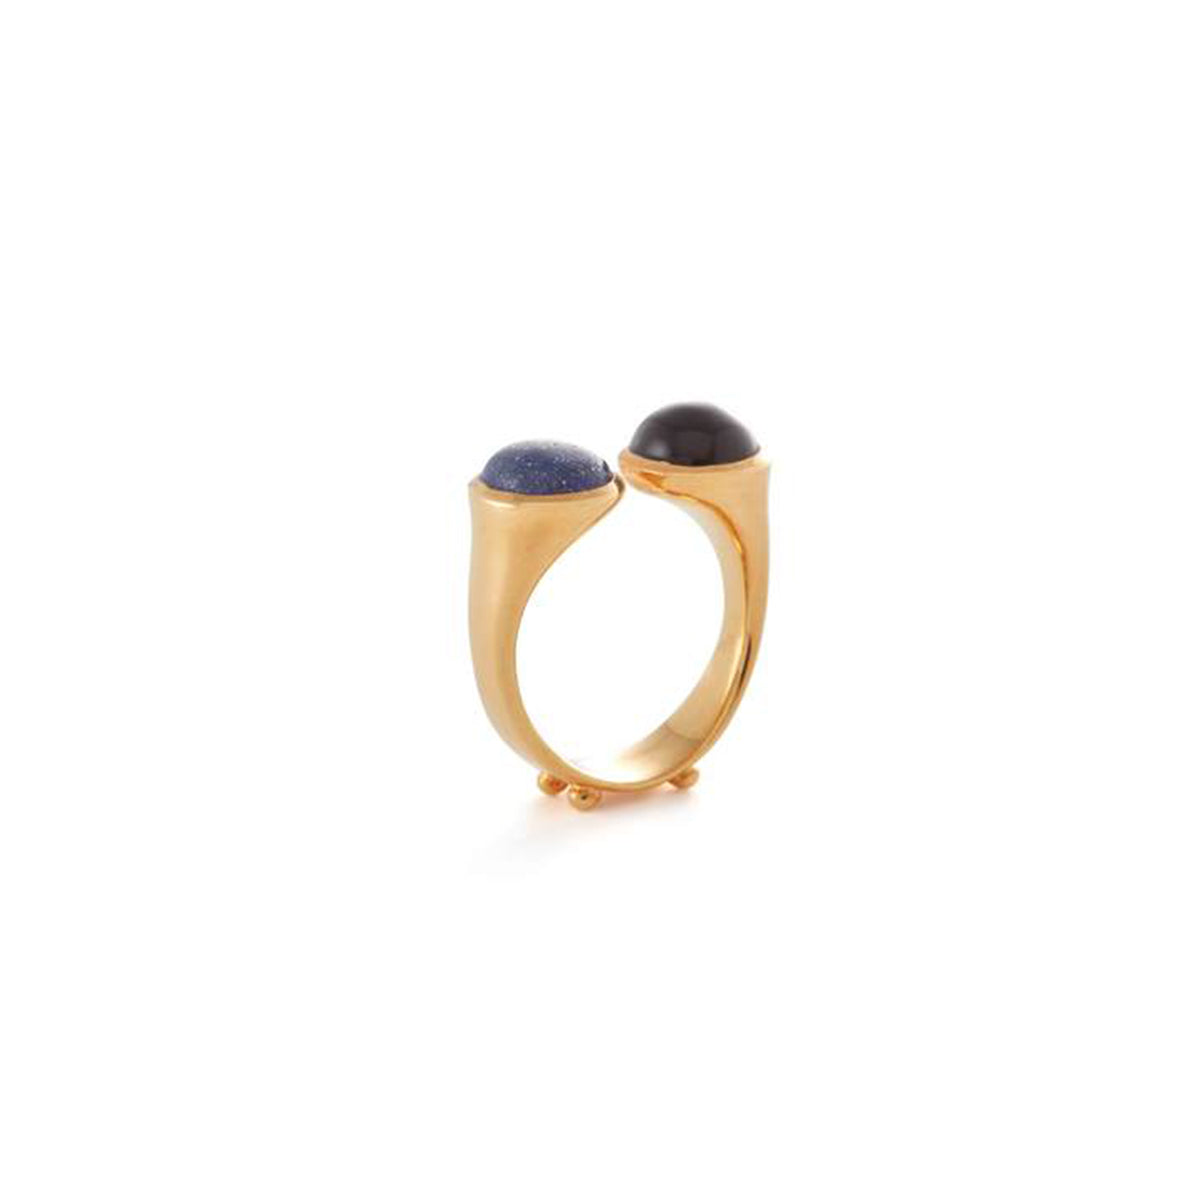 Descartes Ring in Lapis Lazuli and Onyx